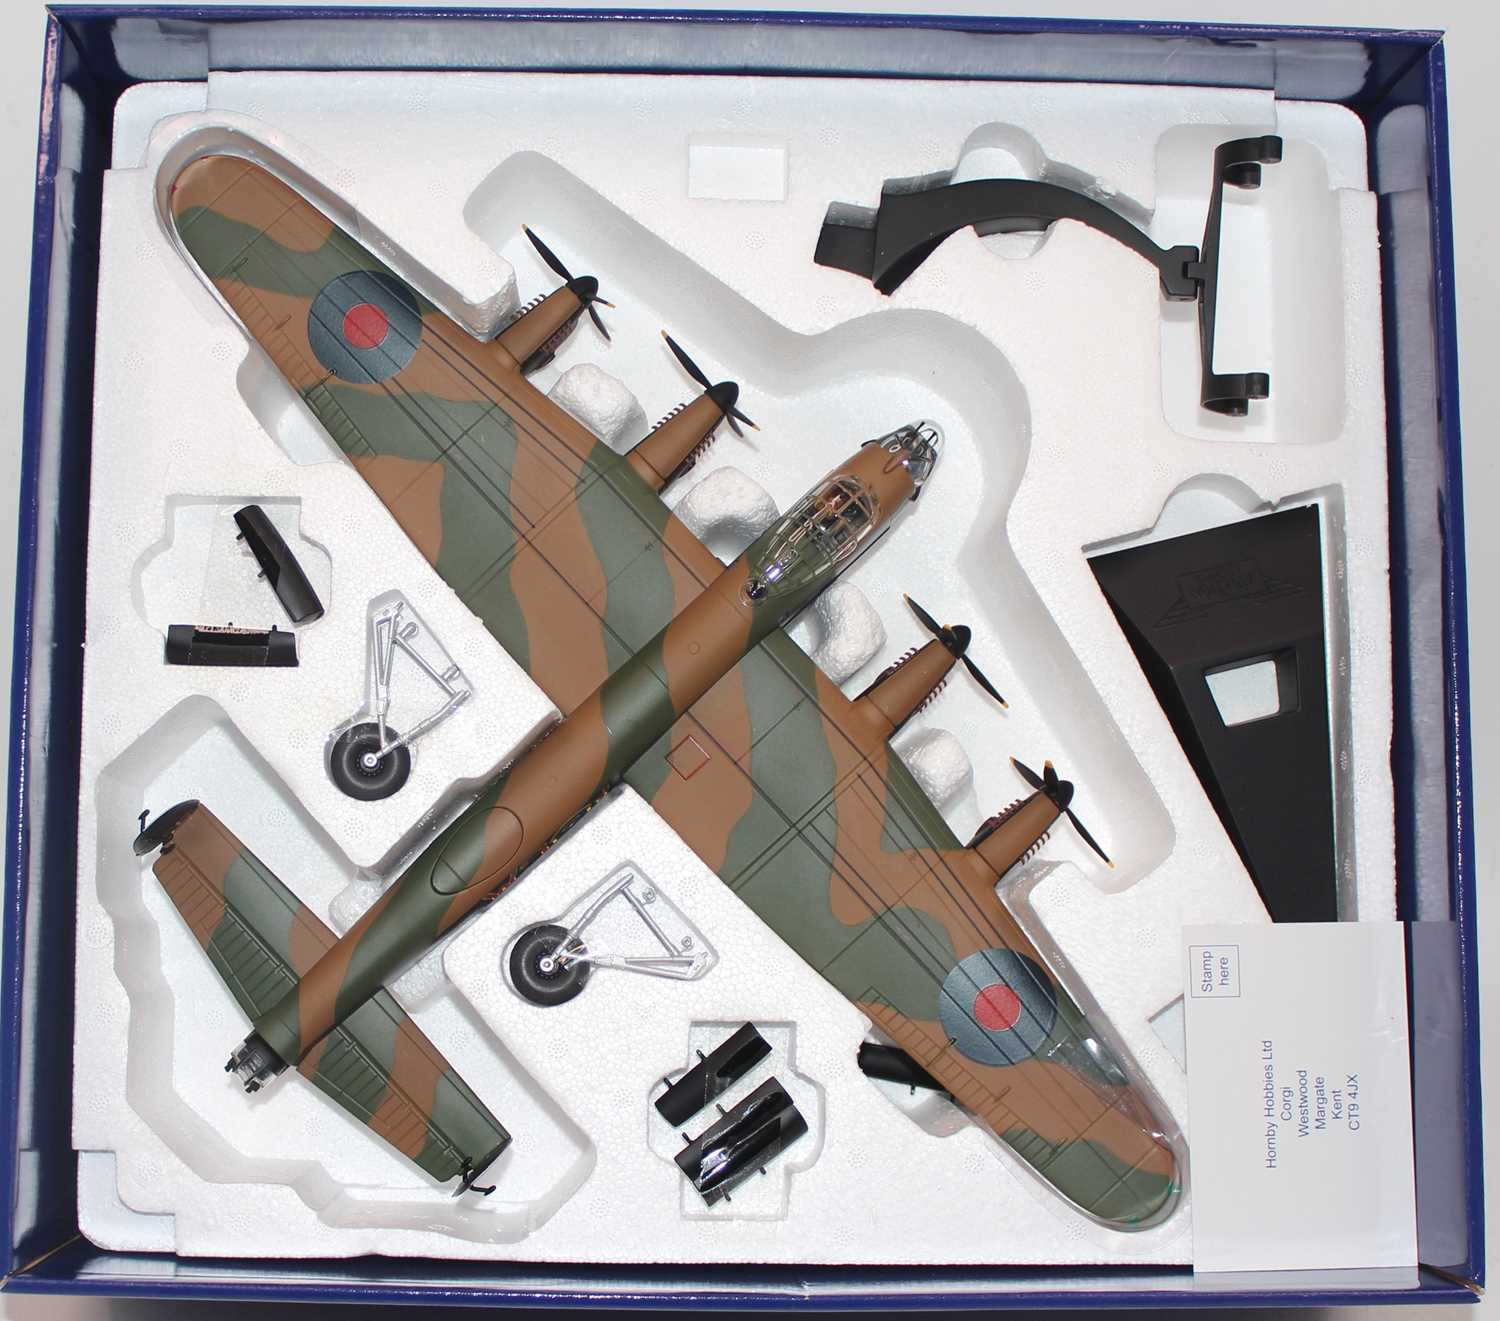 A Corgi Aviation Archive model No. AA32619 1/72 scale limited edition diecast model of an Avro - Image 2 of 2